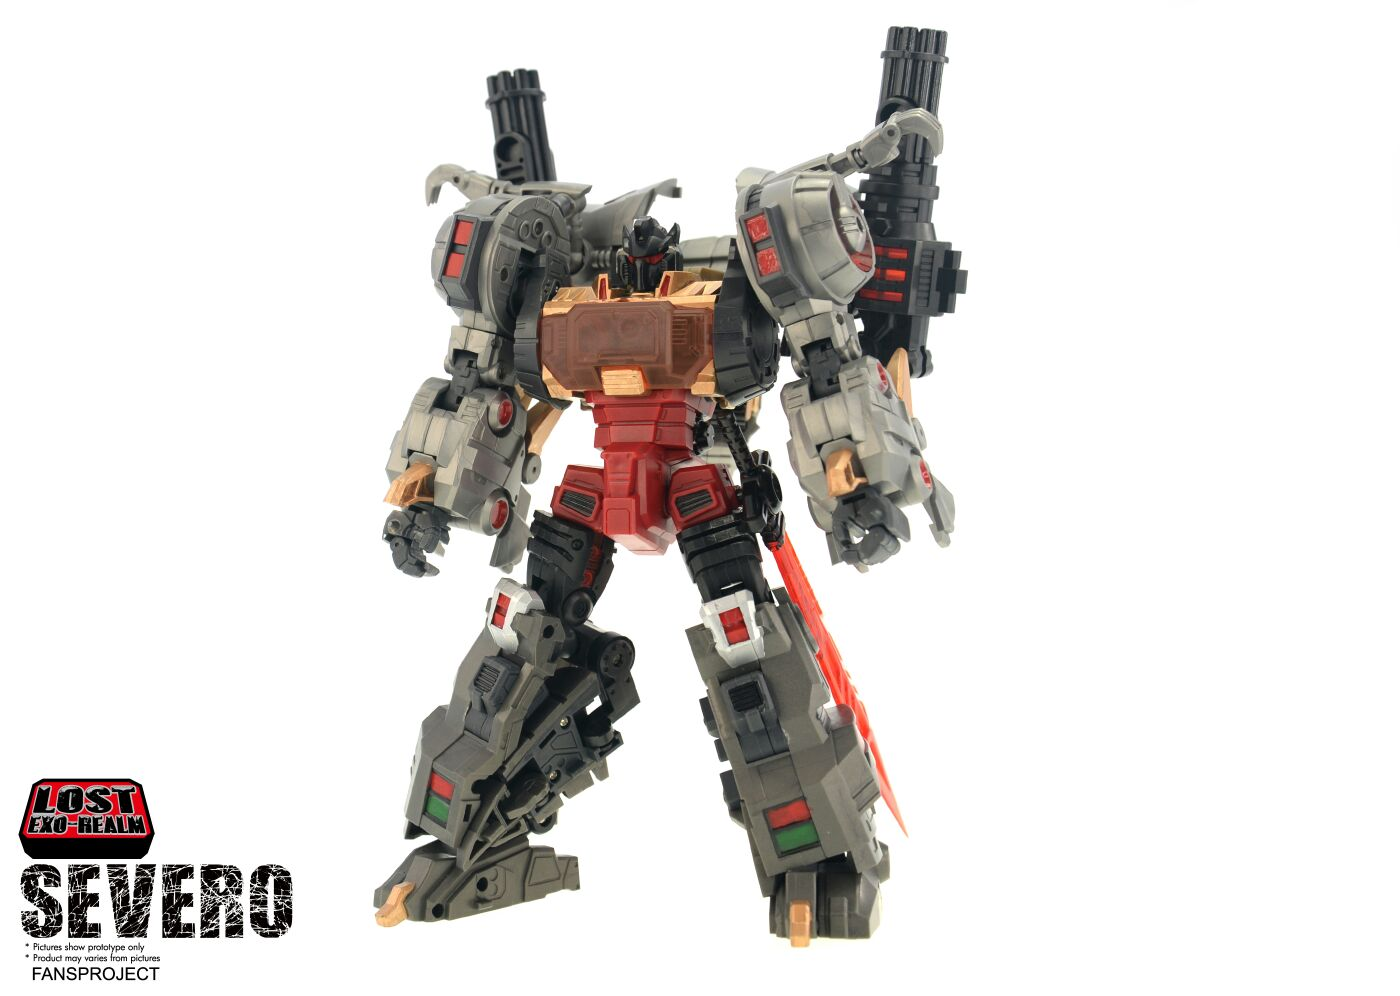 [FansProject] Produit Tiers - Jouets LER (Lost Exo Realm) - aka Dinobots - Page 2 Severo-1